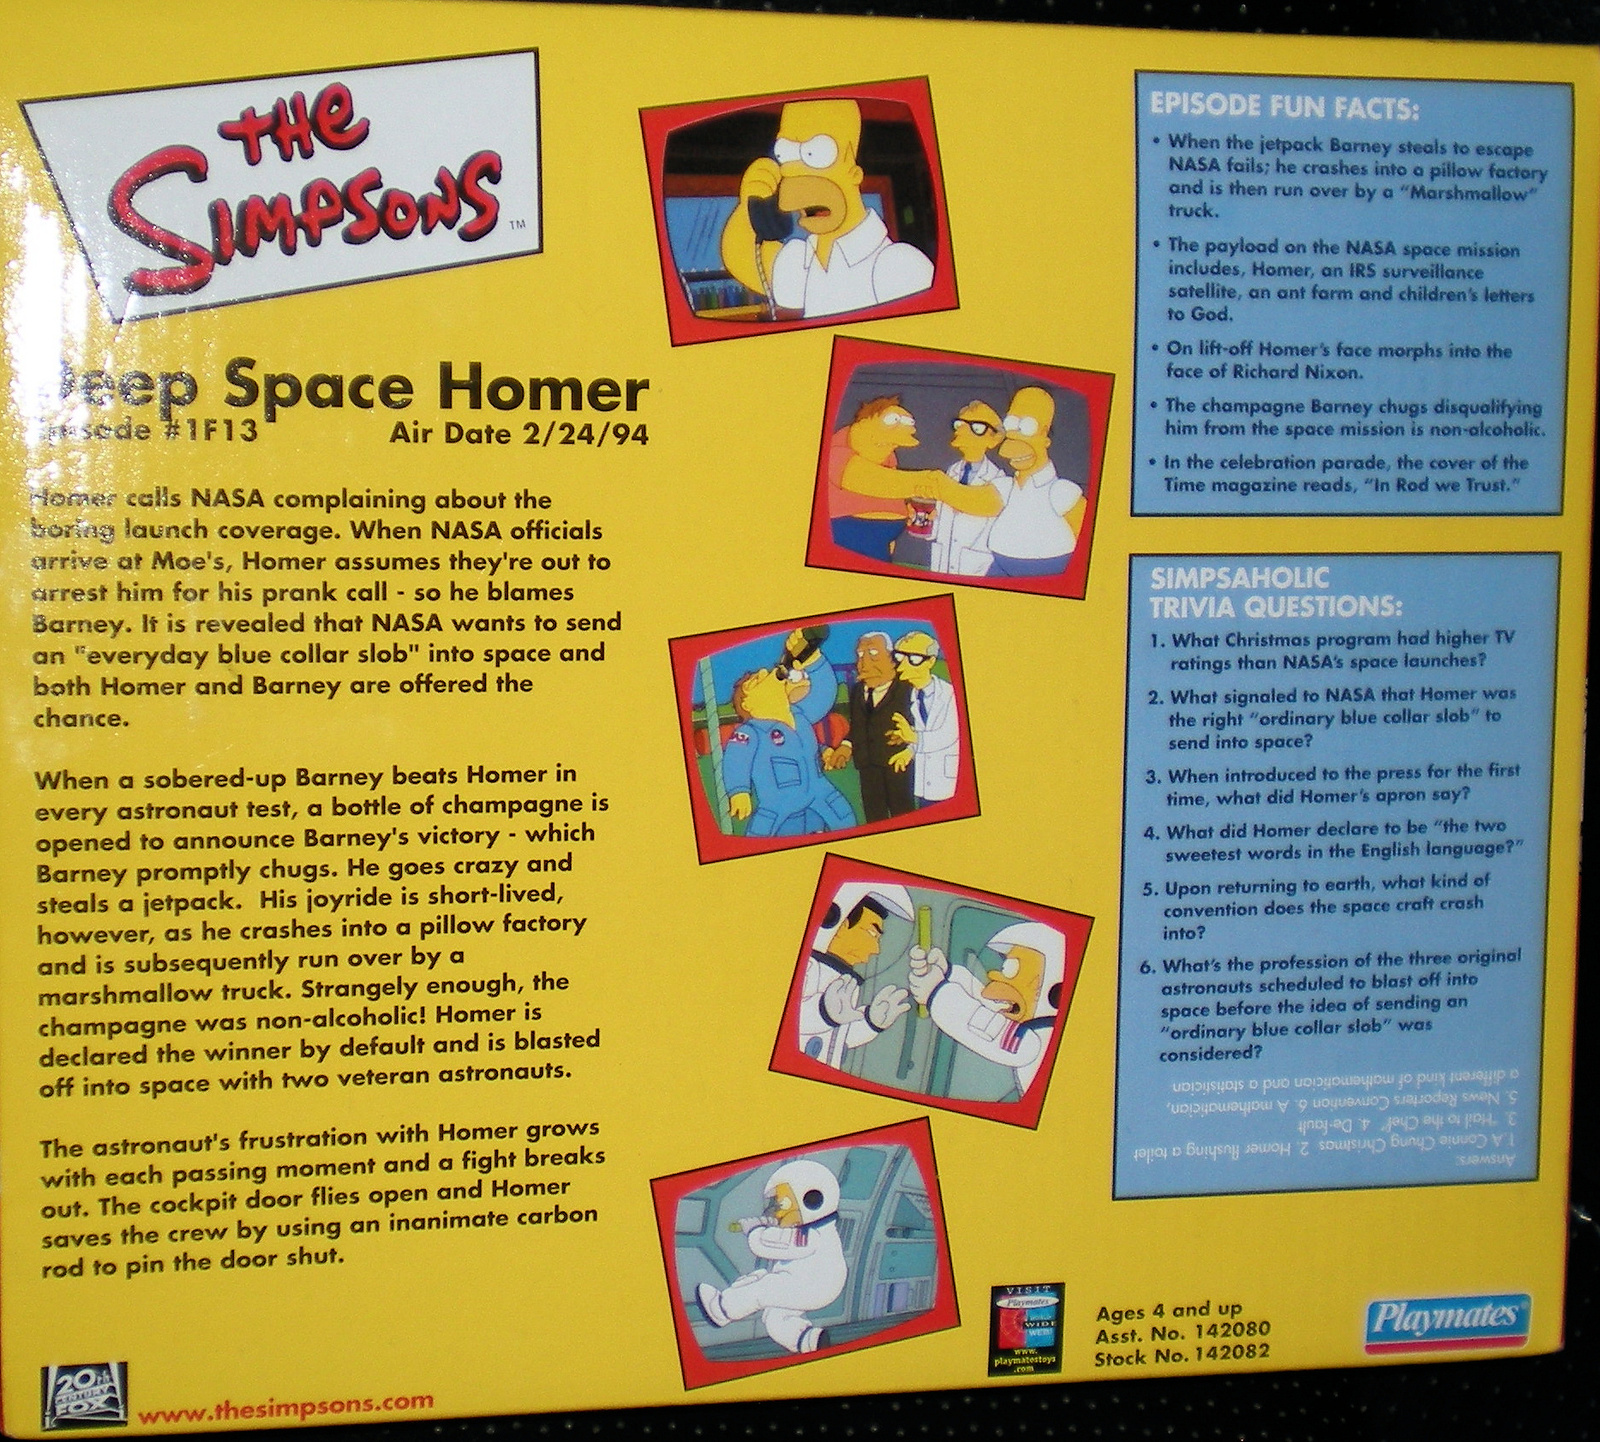 The Simpsons - Deep Space Homer image 2